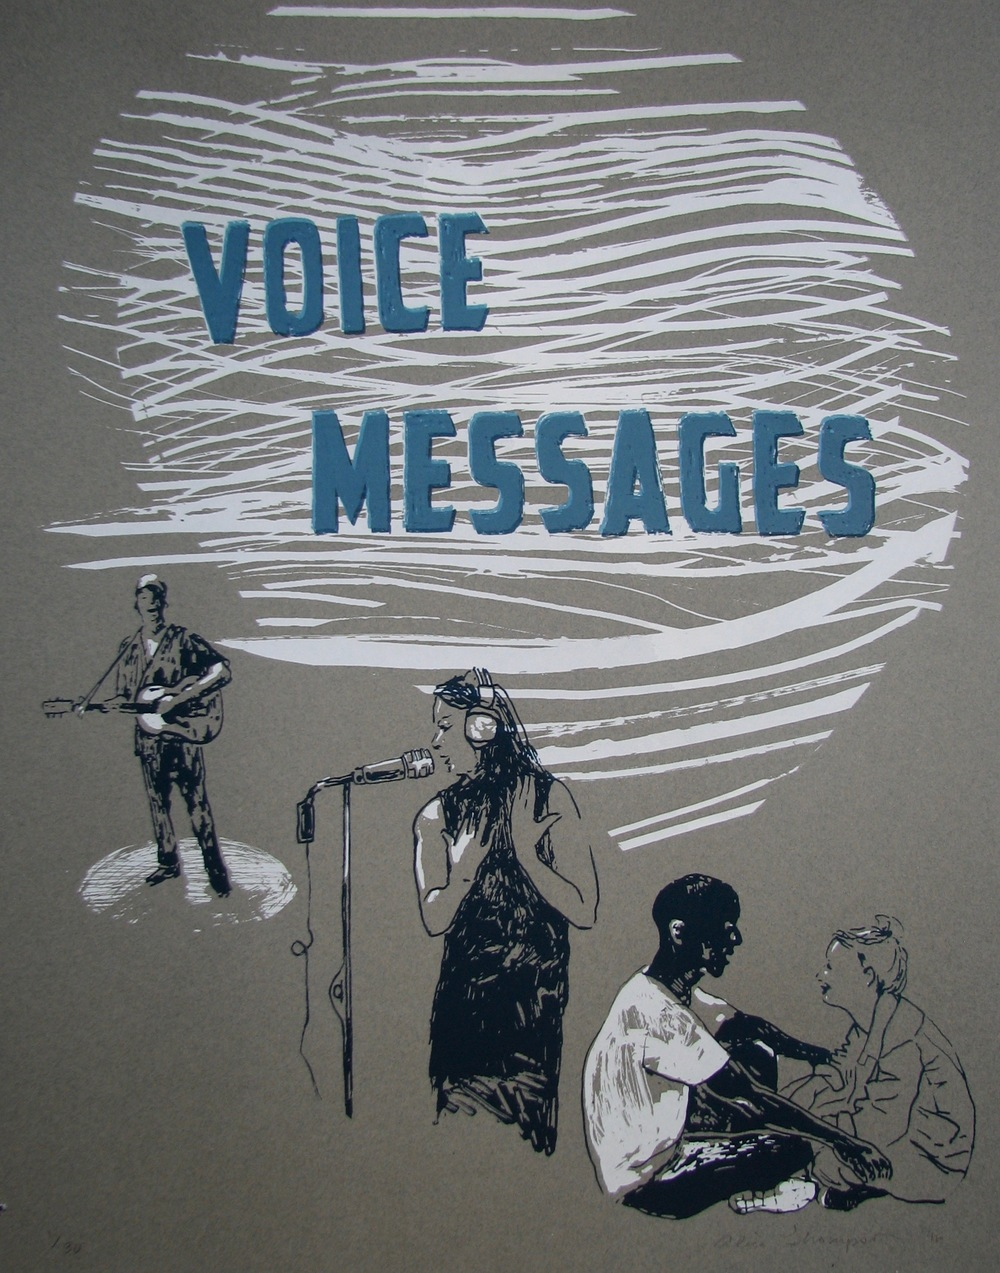 This hand-printed poster for Voice Messages, created by artist Alice Thompson, is the star of the Art of the Voice campaign perk.